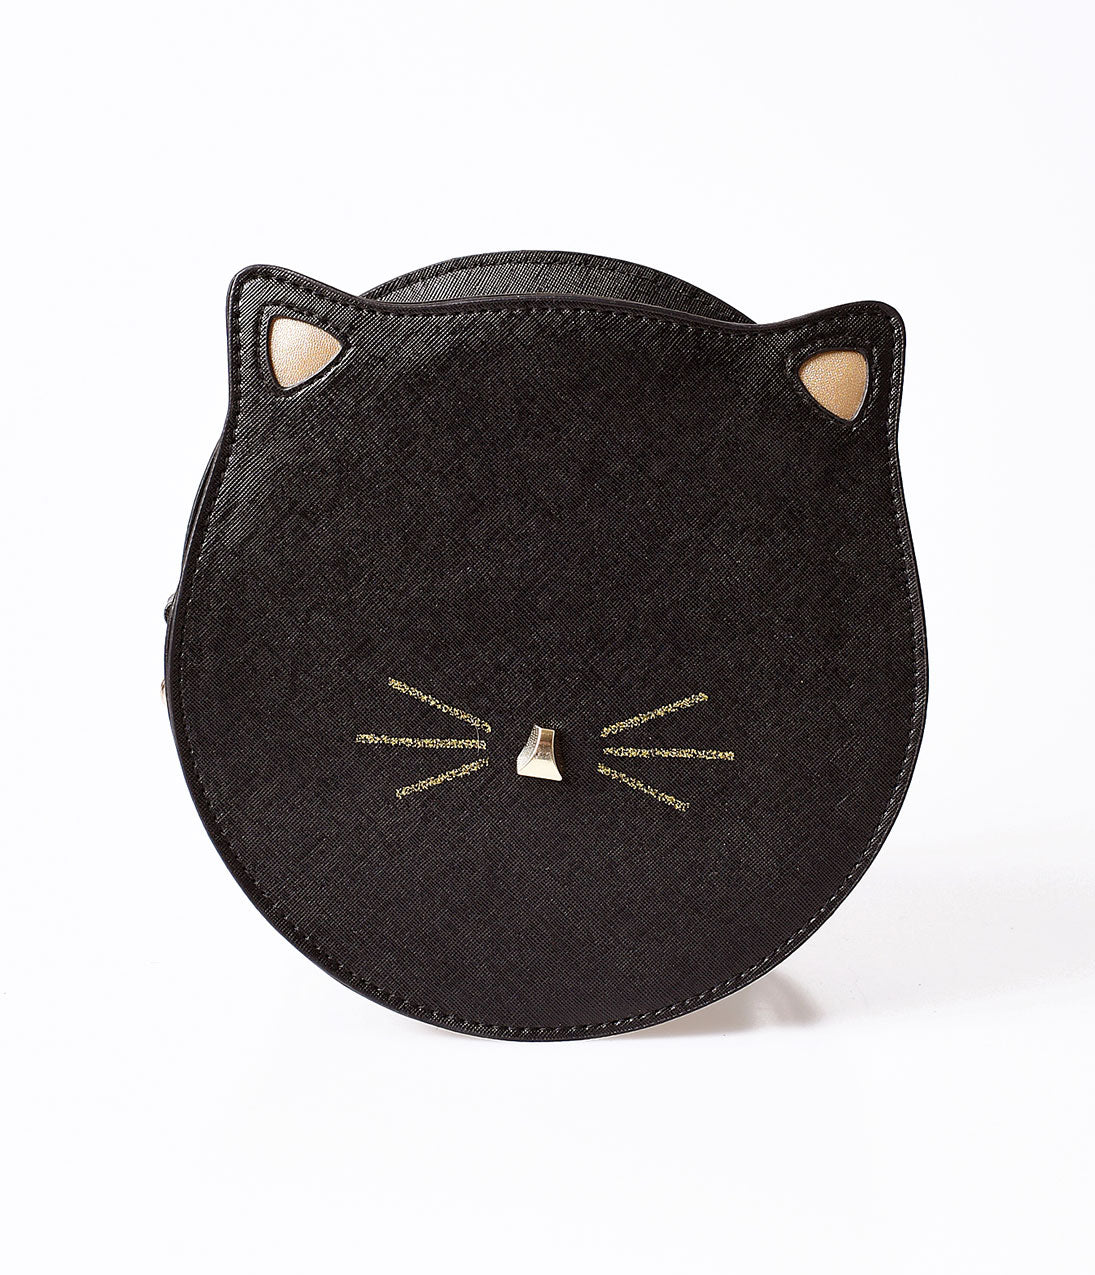 Vintage & Retro Handbags, Purses, Wallets, Bags Unique Vintage Black Leatherette Circle Cat Face Shoulder Bag $27.00 AT vintagedancer.com